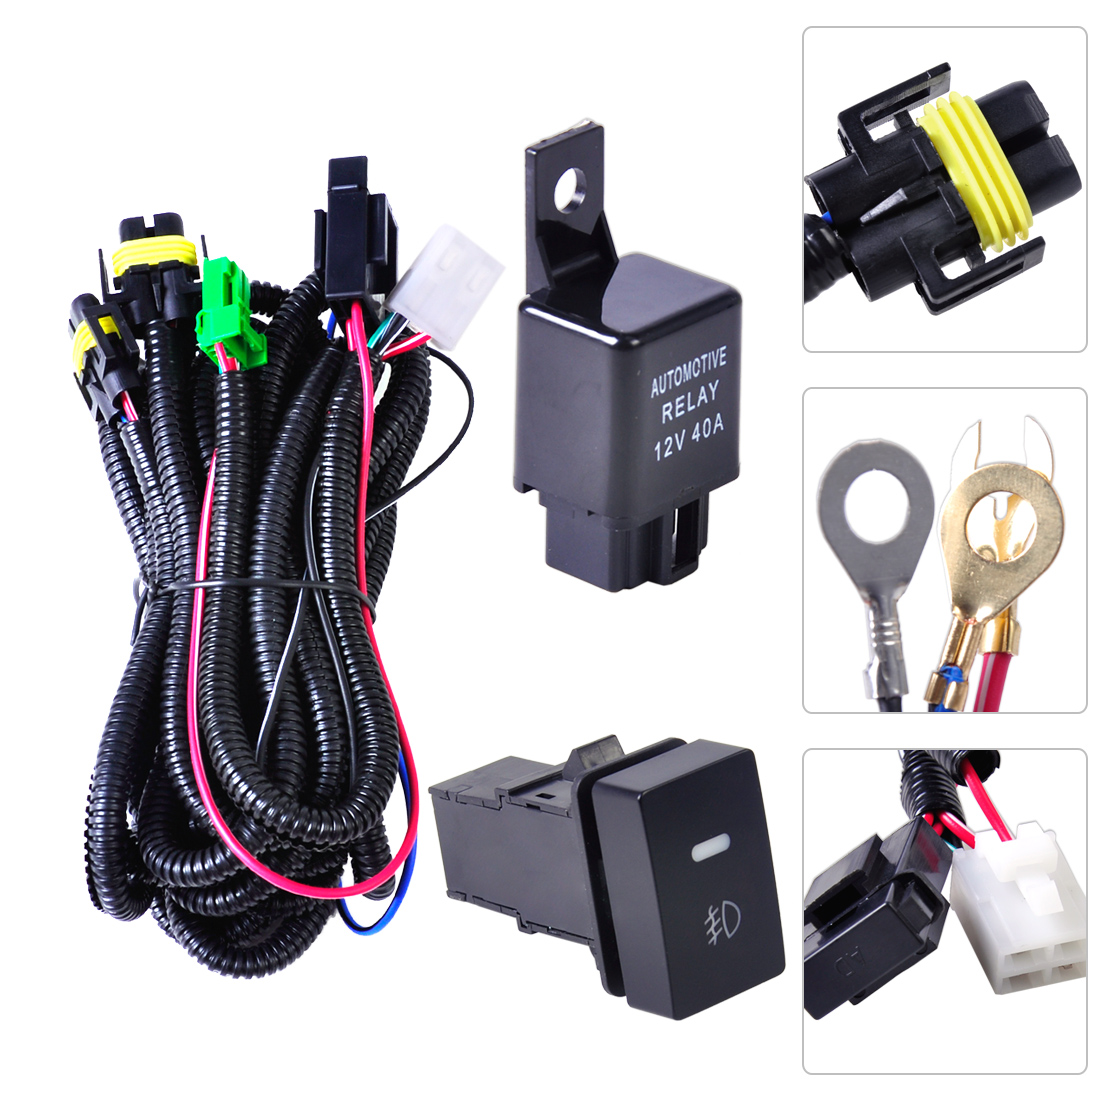 DWCX Wiring Harness Sockets Wire + Switch for H11 Fog Light Lamp for Ford  Focus Acura Nissan Suzuki Subaru Lincoln Honda CR V|honda honda|ford light  switchfog lamp wiring - AliExpress | Ford Ranger Fog Light Switch Wiring |  | AliExpress